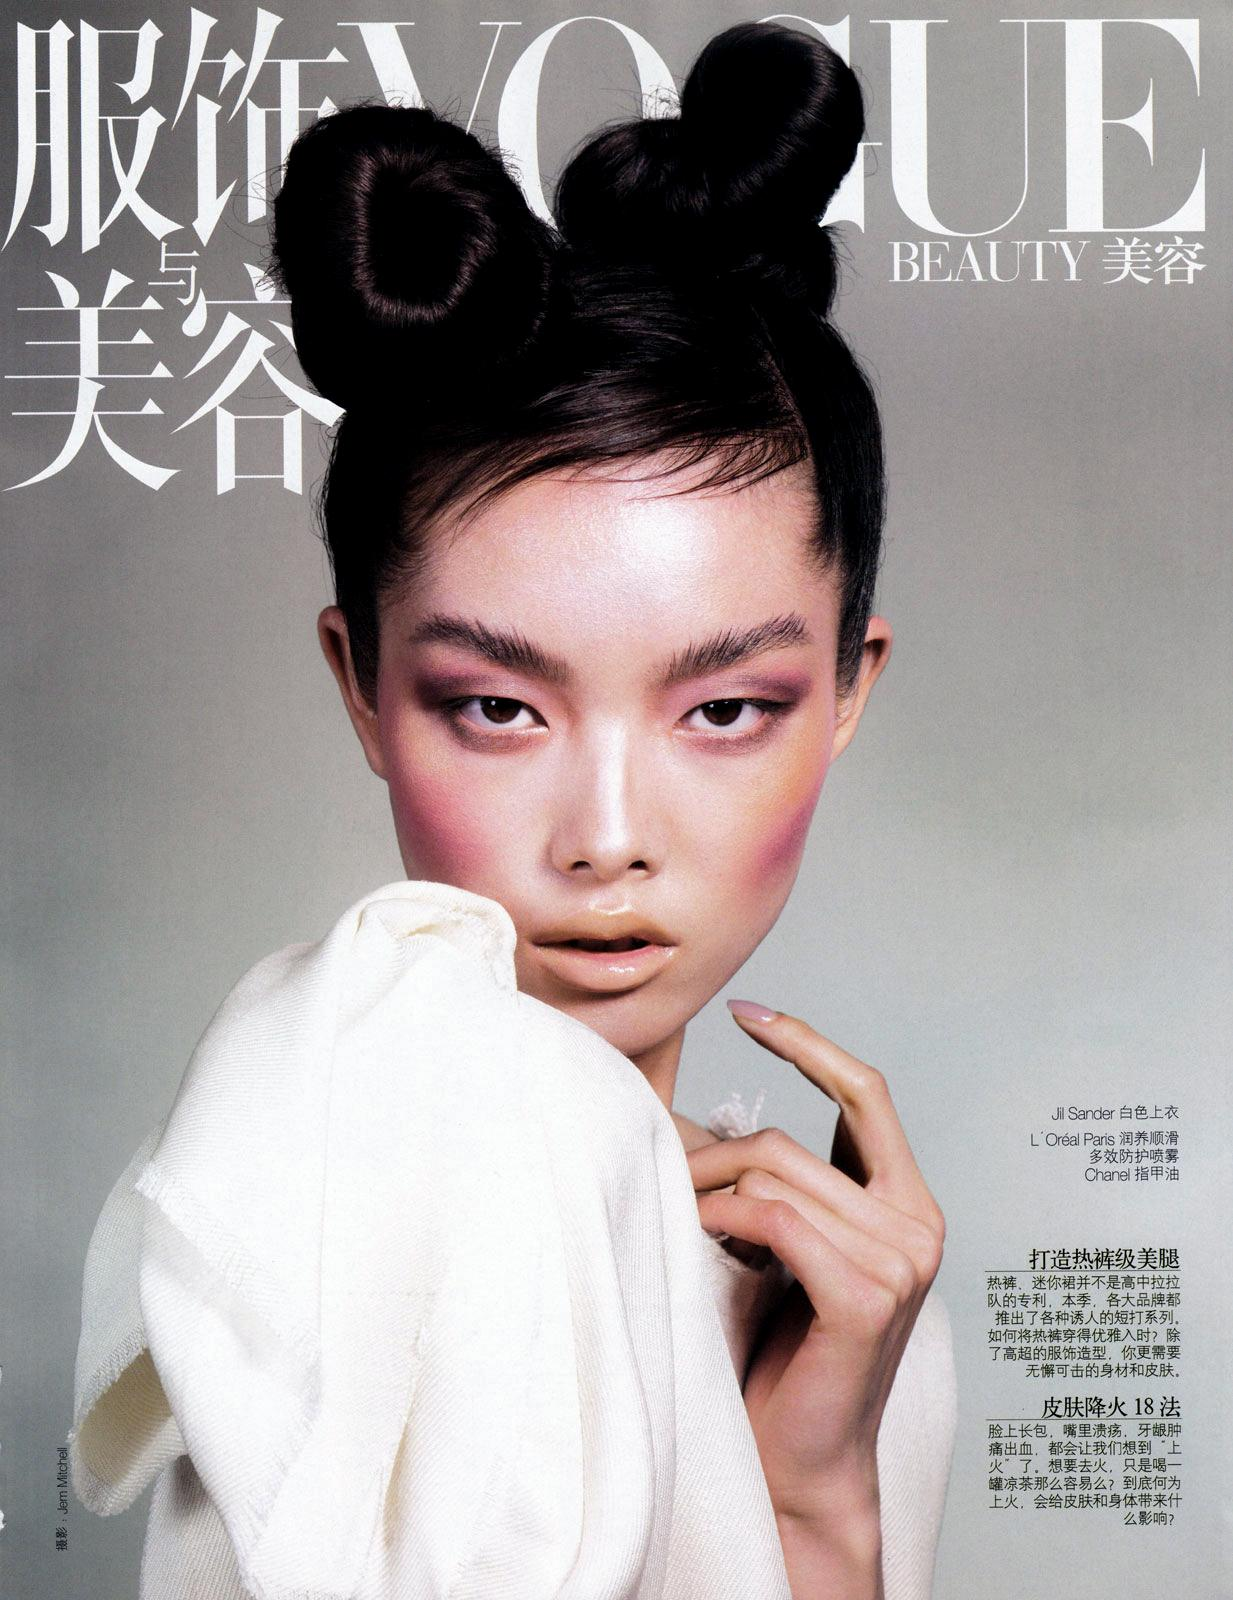 fashioneble girls: Sun Fei Fei Editorial for Vogue China, June 2010